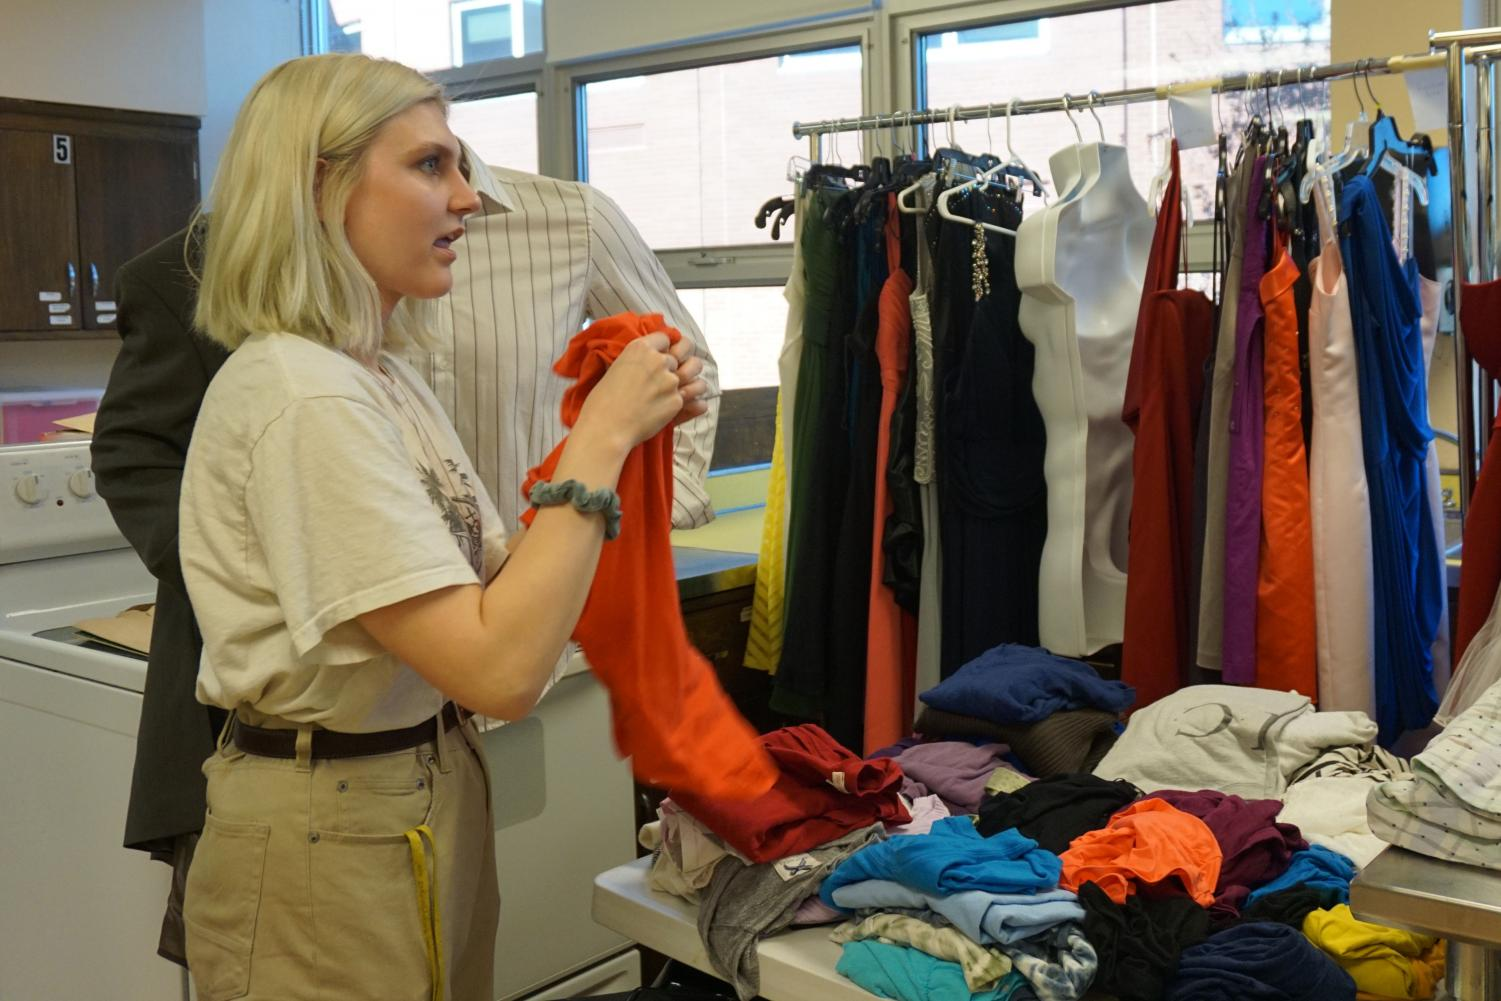 Senior Ava Townsend folds clothing in order to get The Clothing Closet ready for students. The Clothing Closet is open Tuesday through Thursday during third hour for any students looking for free secondhand clothing.